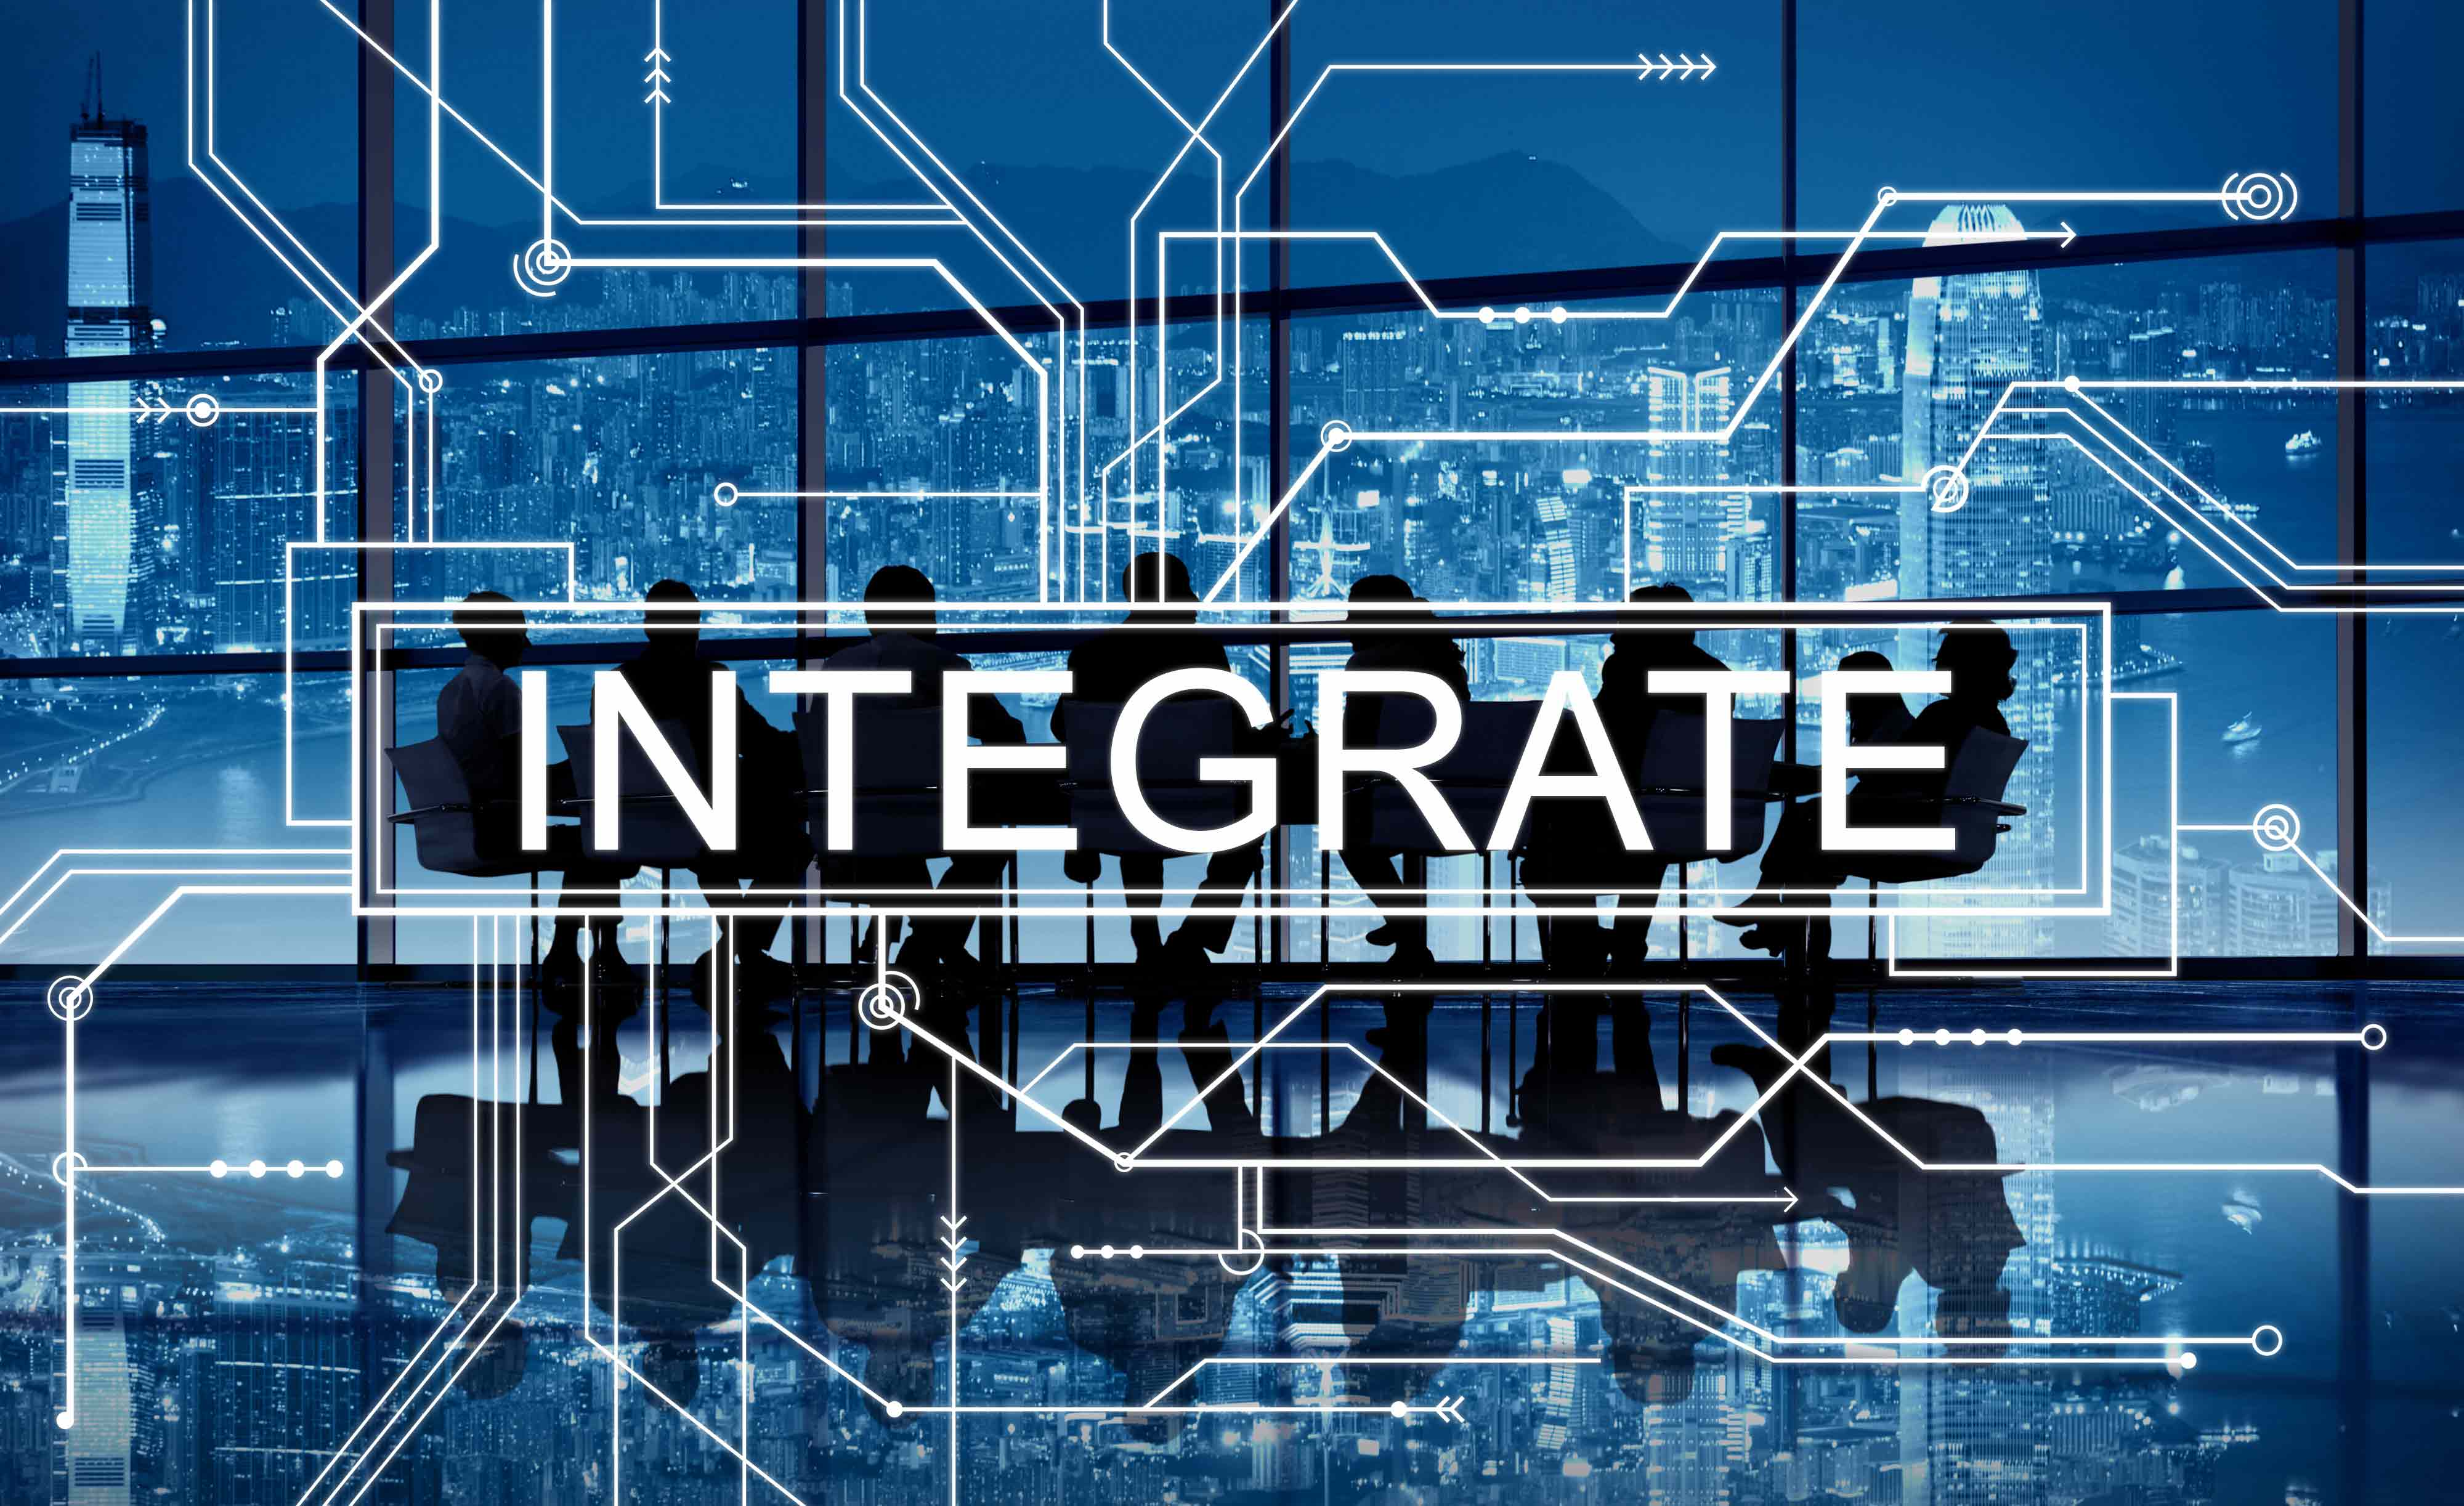 Integrate WFM Employee management software - integrate circuit board graphics concept 1 - Things to keep in mind while buying an employee management software